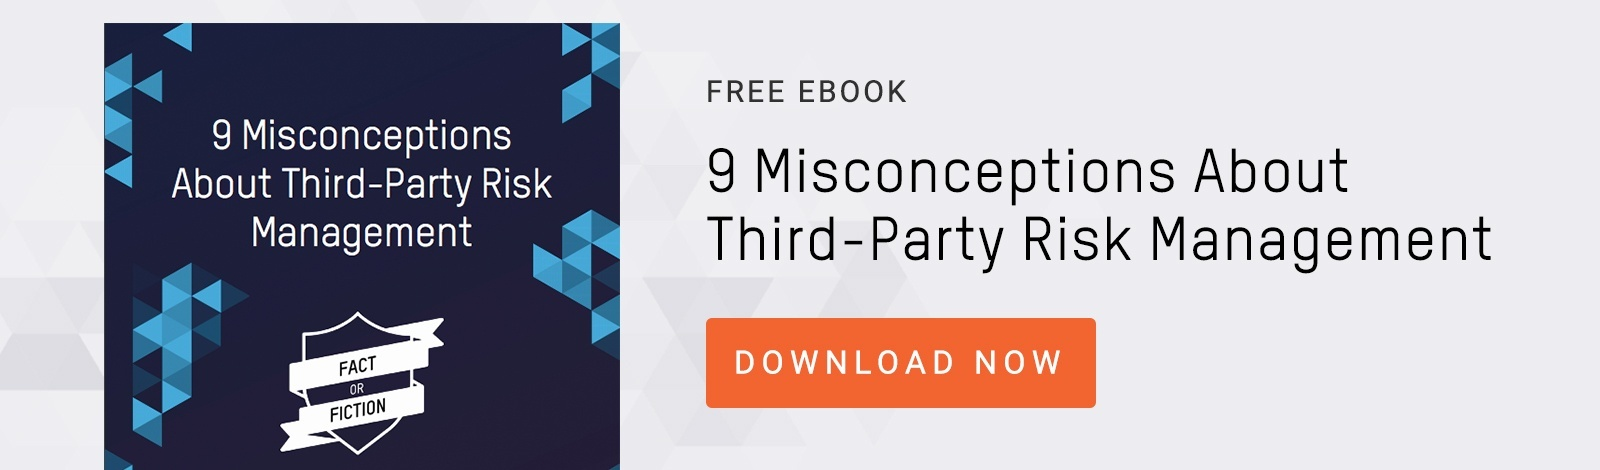 third-party risk management misconceptions